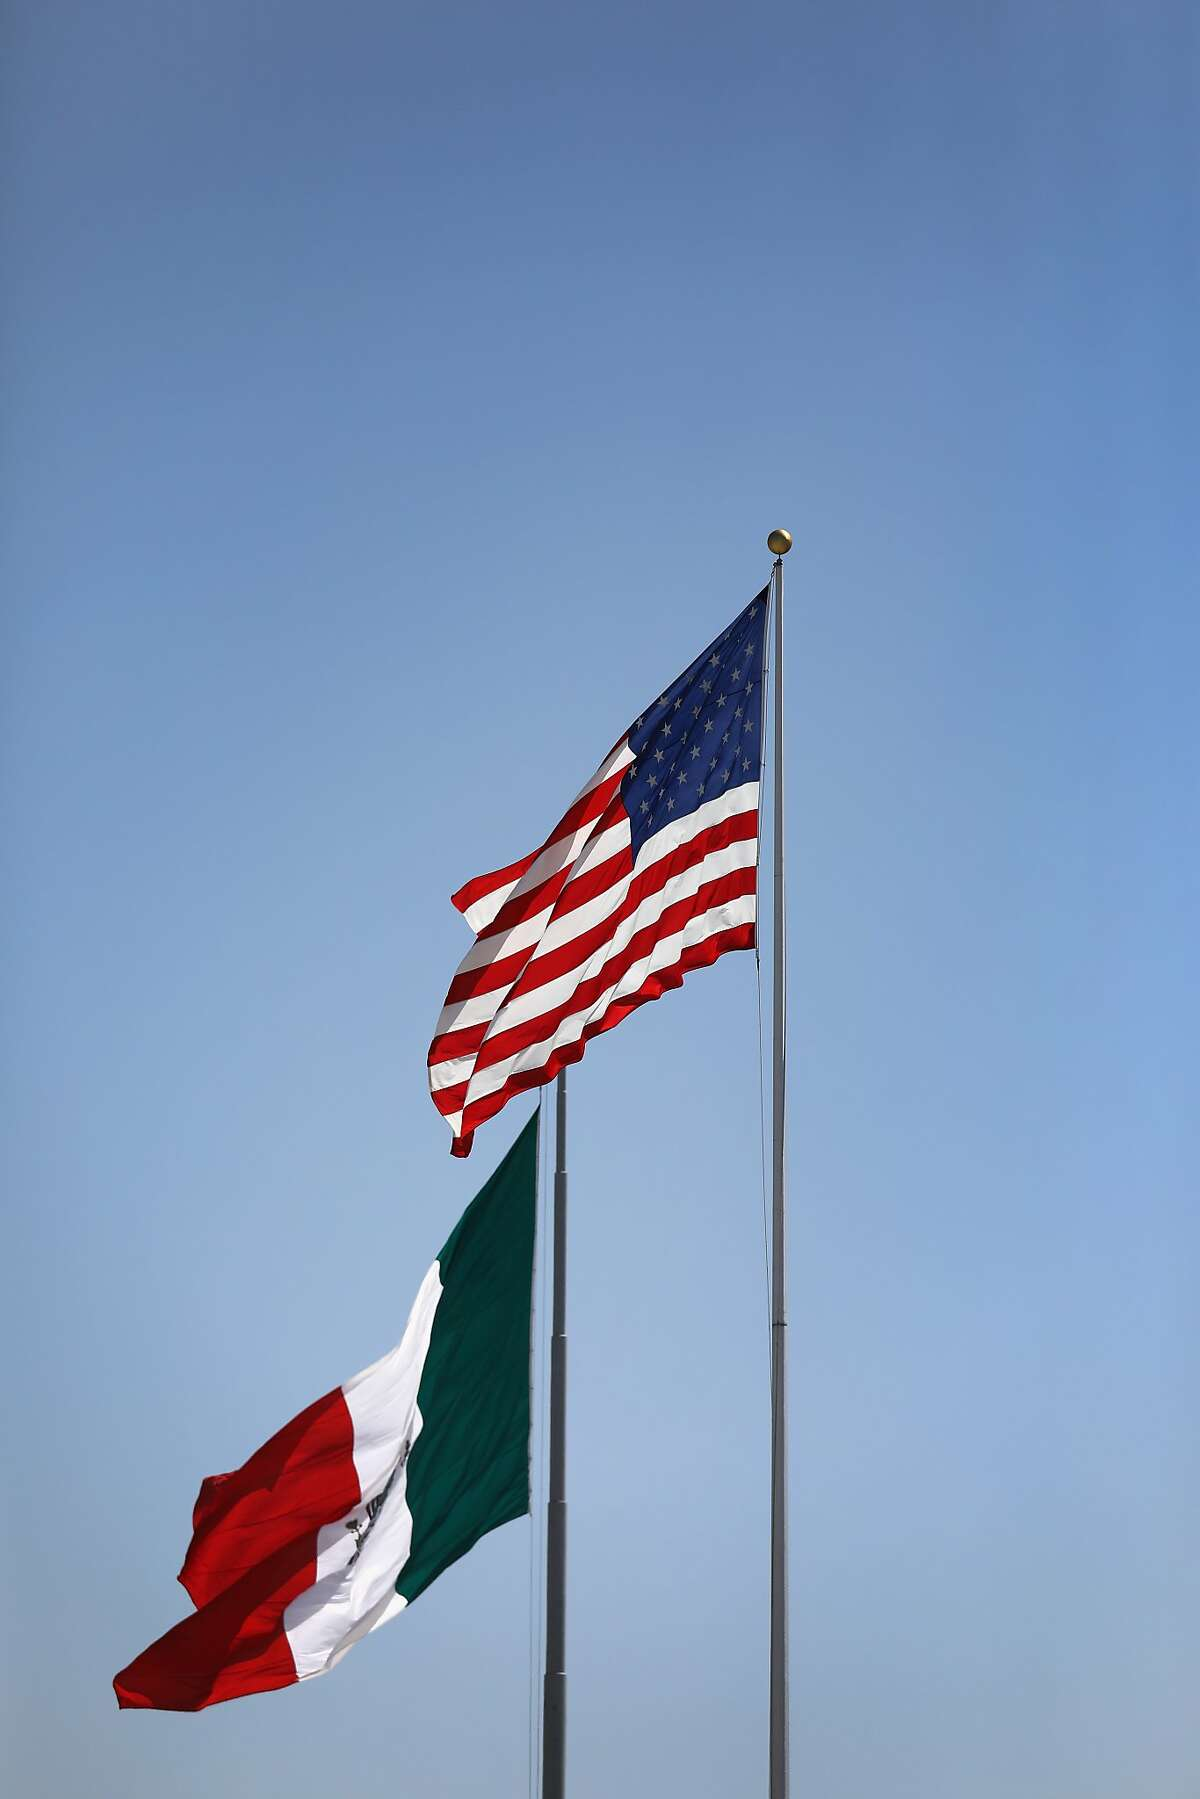 TIJUANA, MEXICO - SEPTEMBER 23: The American and Mexican flags stand on either side of the U.S.-Mexico border on September 23, 2016 in Tijuana, Mexico. Securing the border and controlling illegal immigration have become key issues in the U.S. Presidential campaign. (Photo by John Moore/Getty Images)